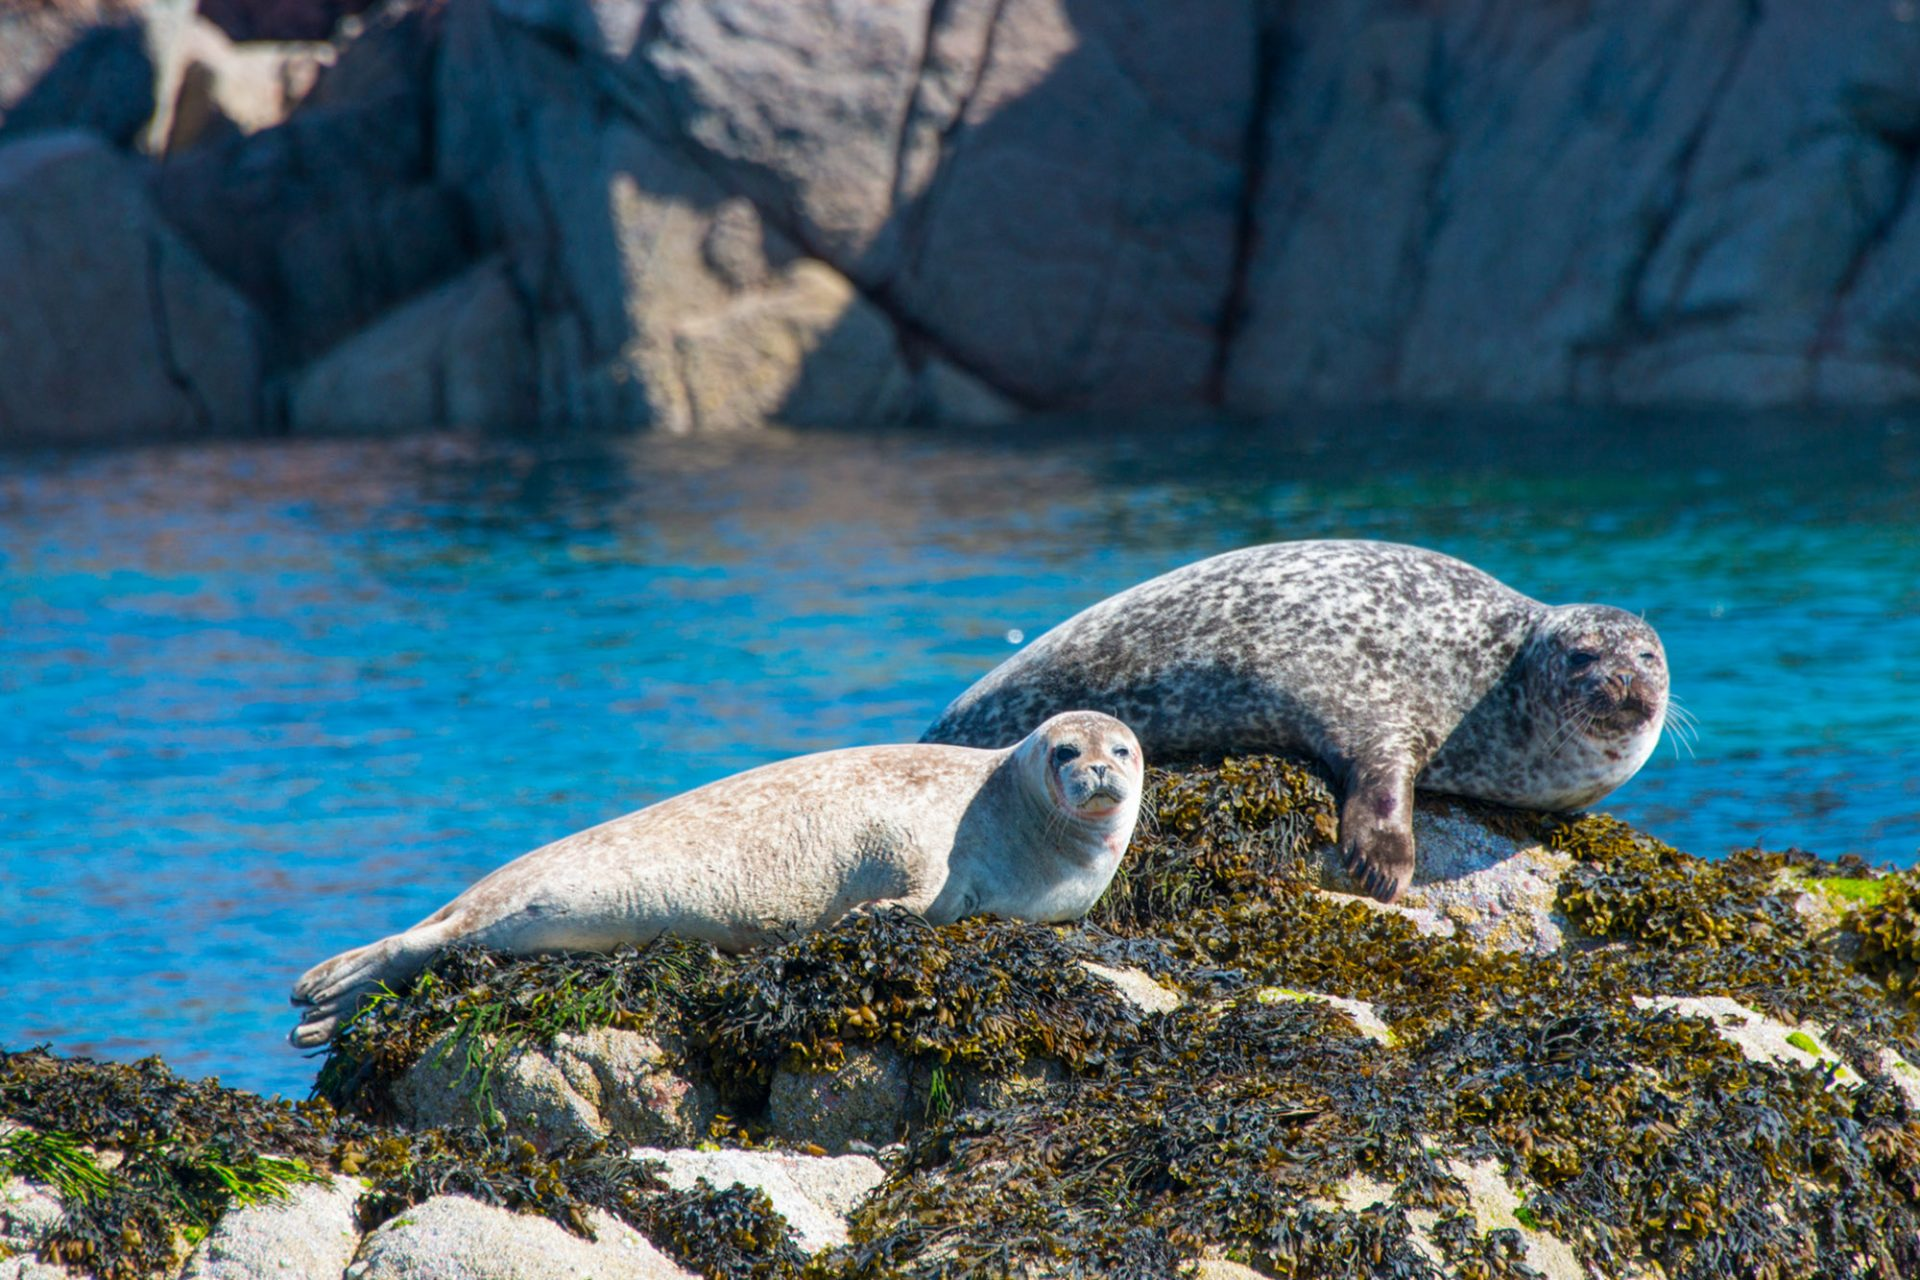 Two seals in Iona, a small island which features in our tour of the Scottish Islands